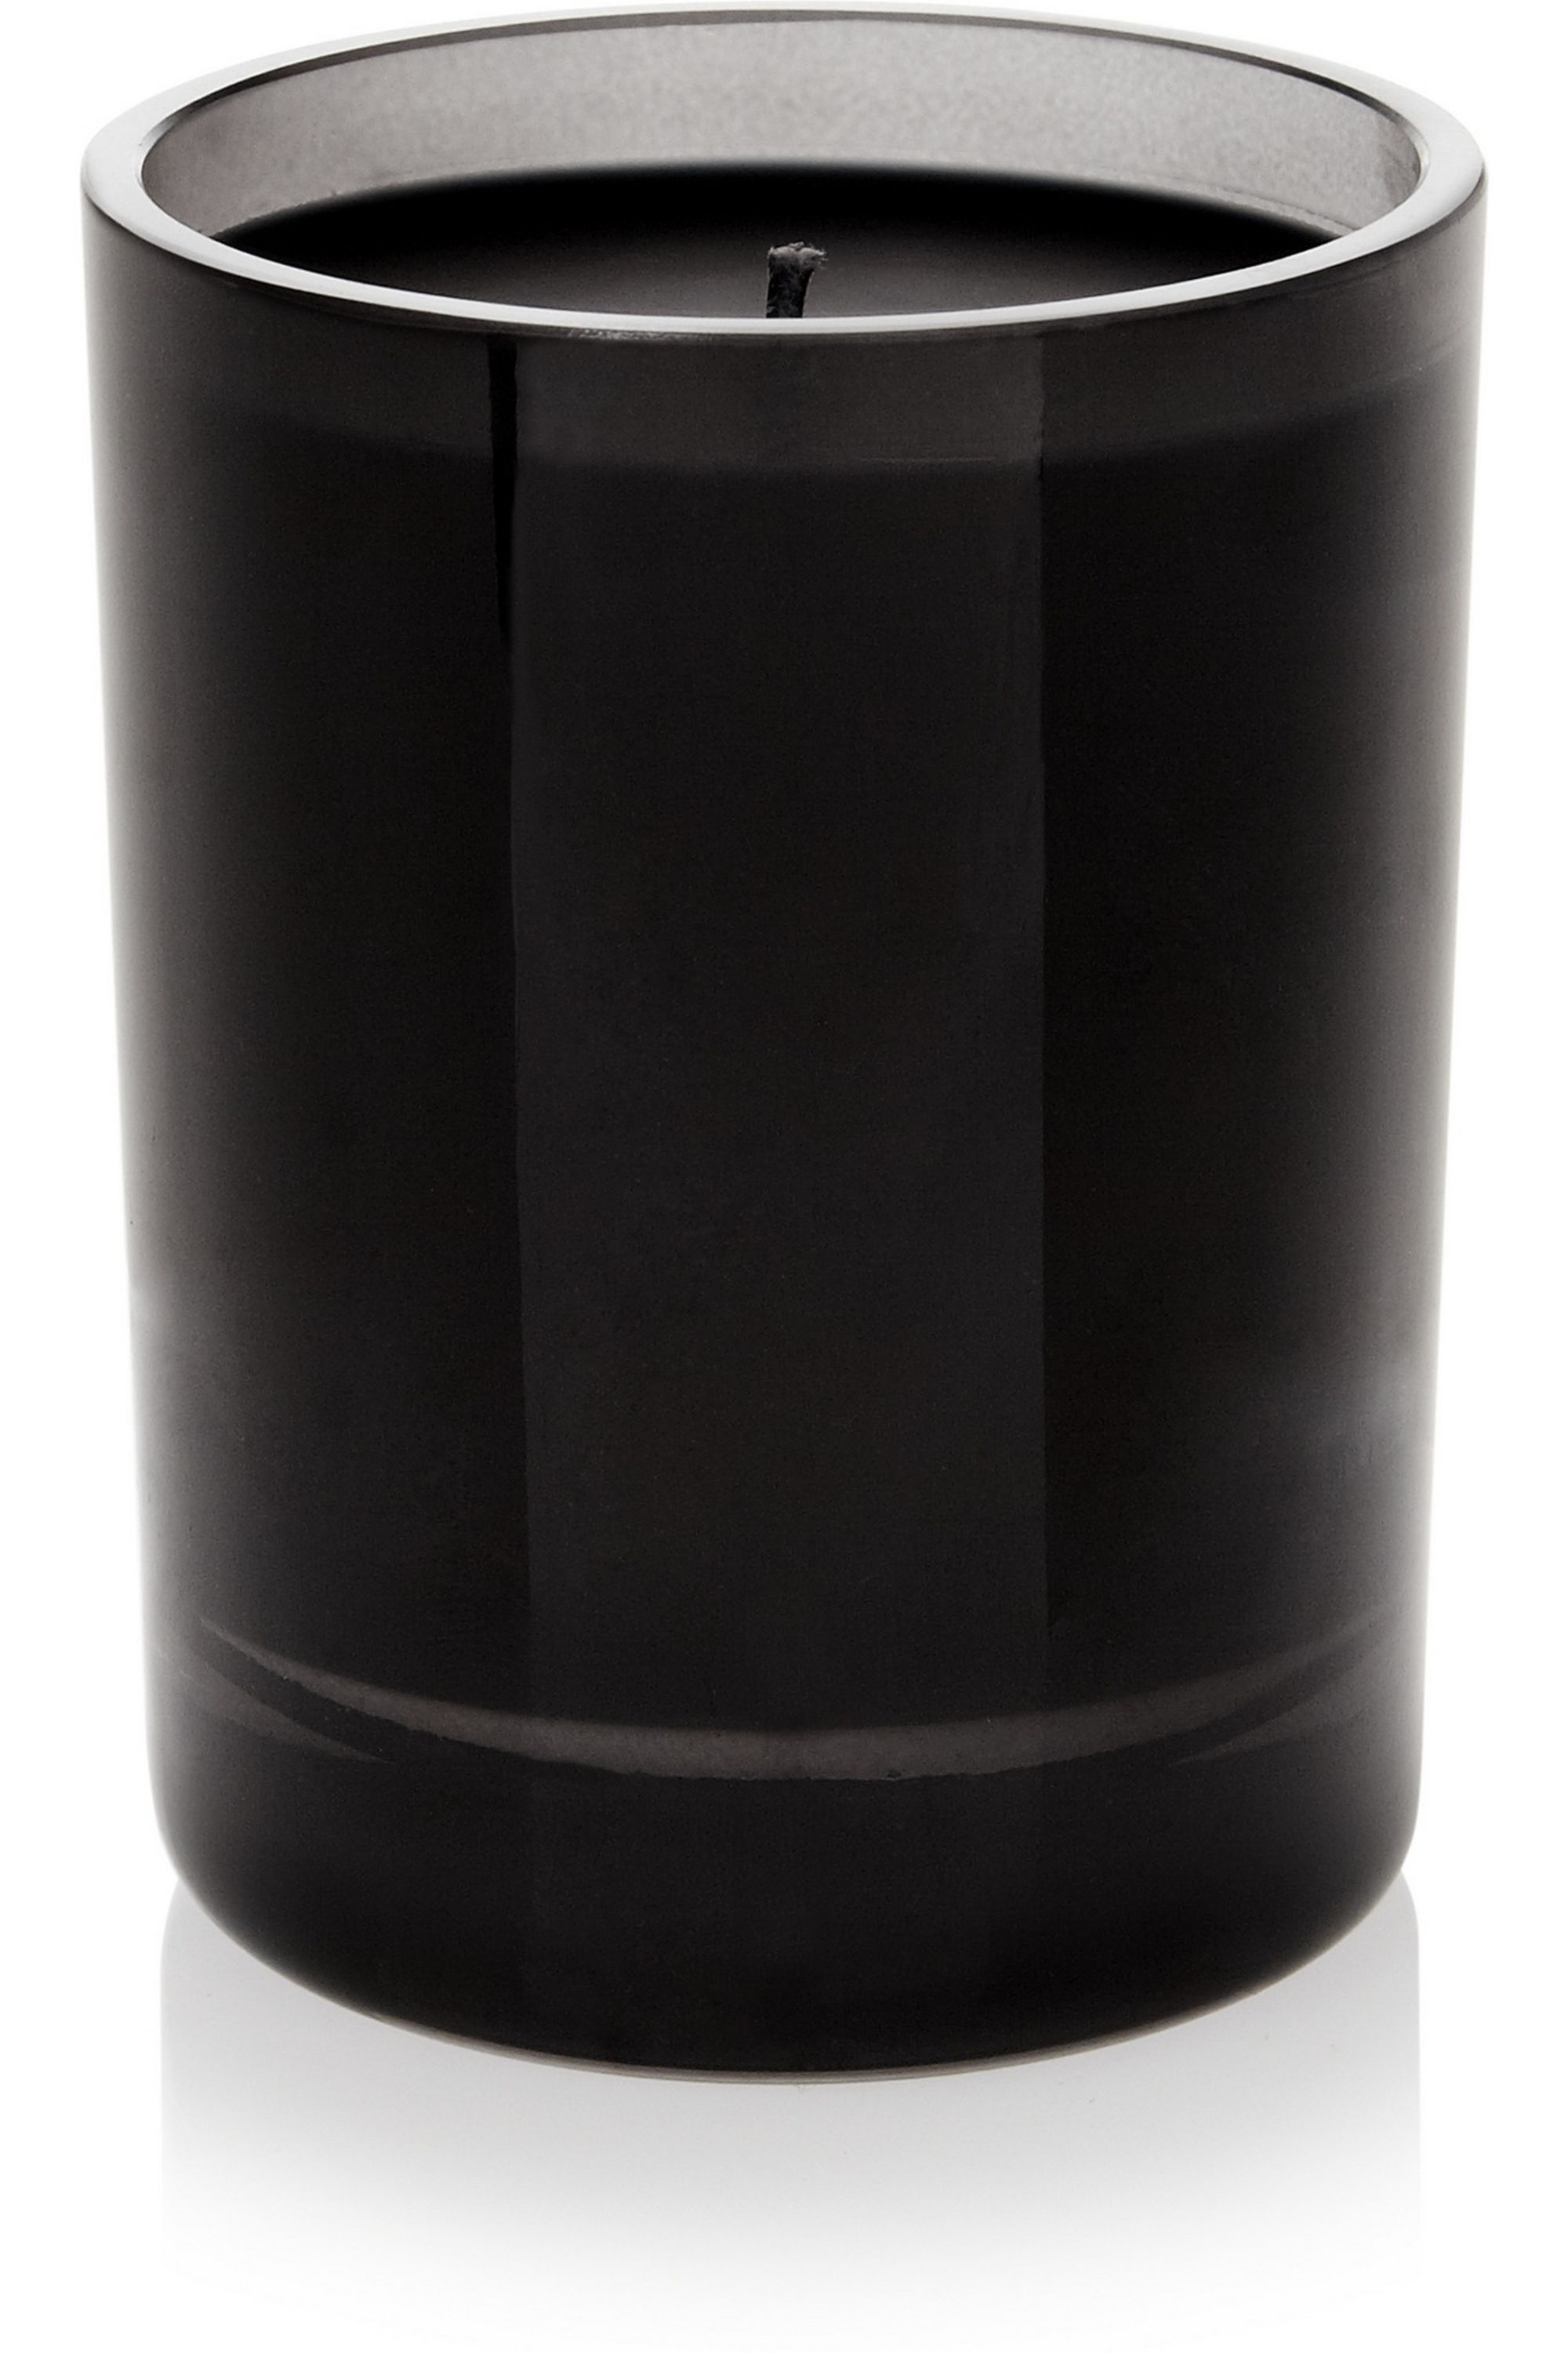 Byredo Bibliothèque scented candle, 240g